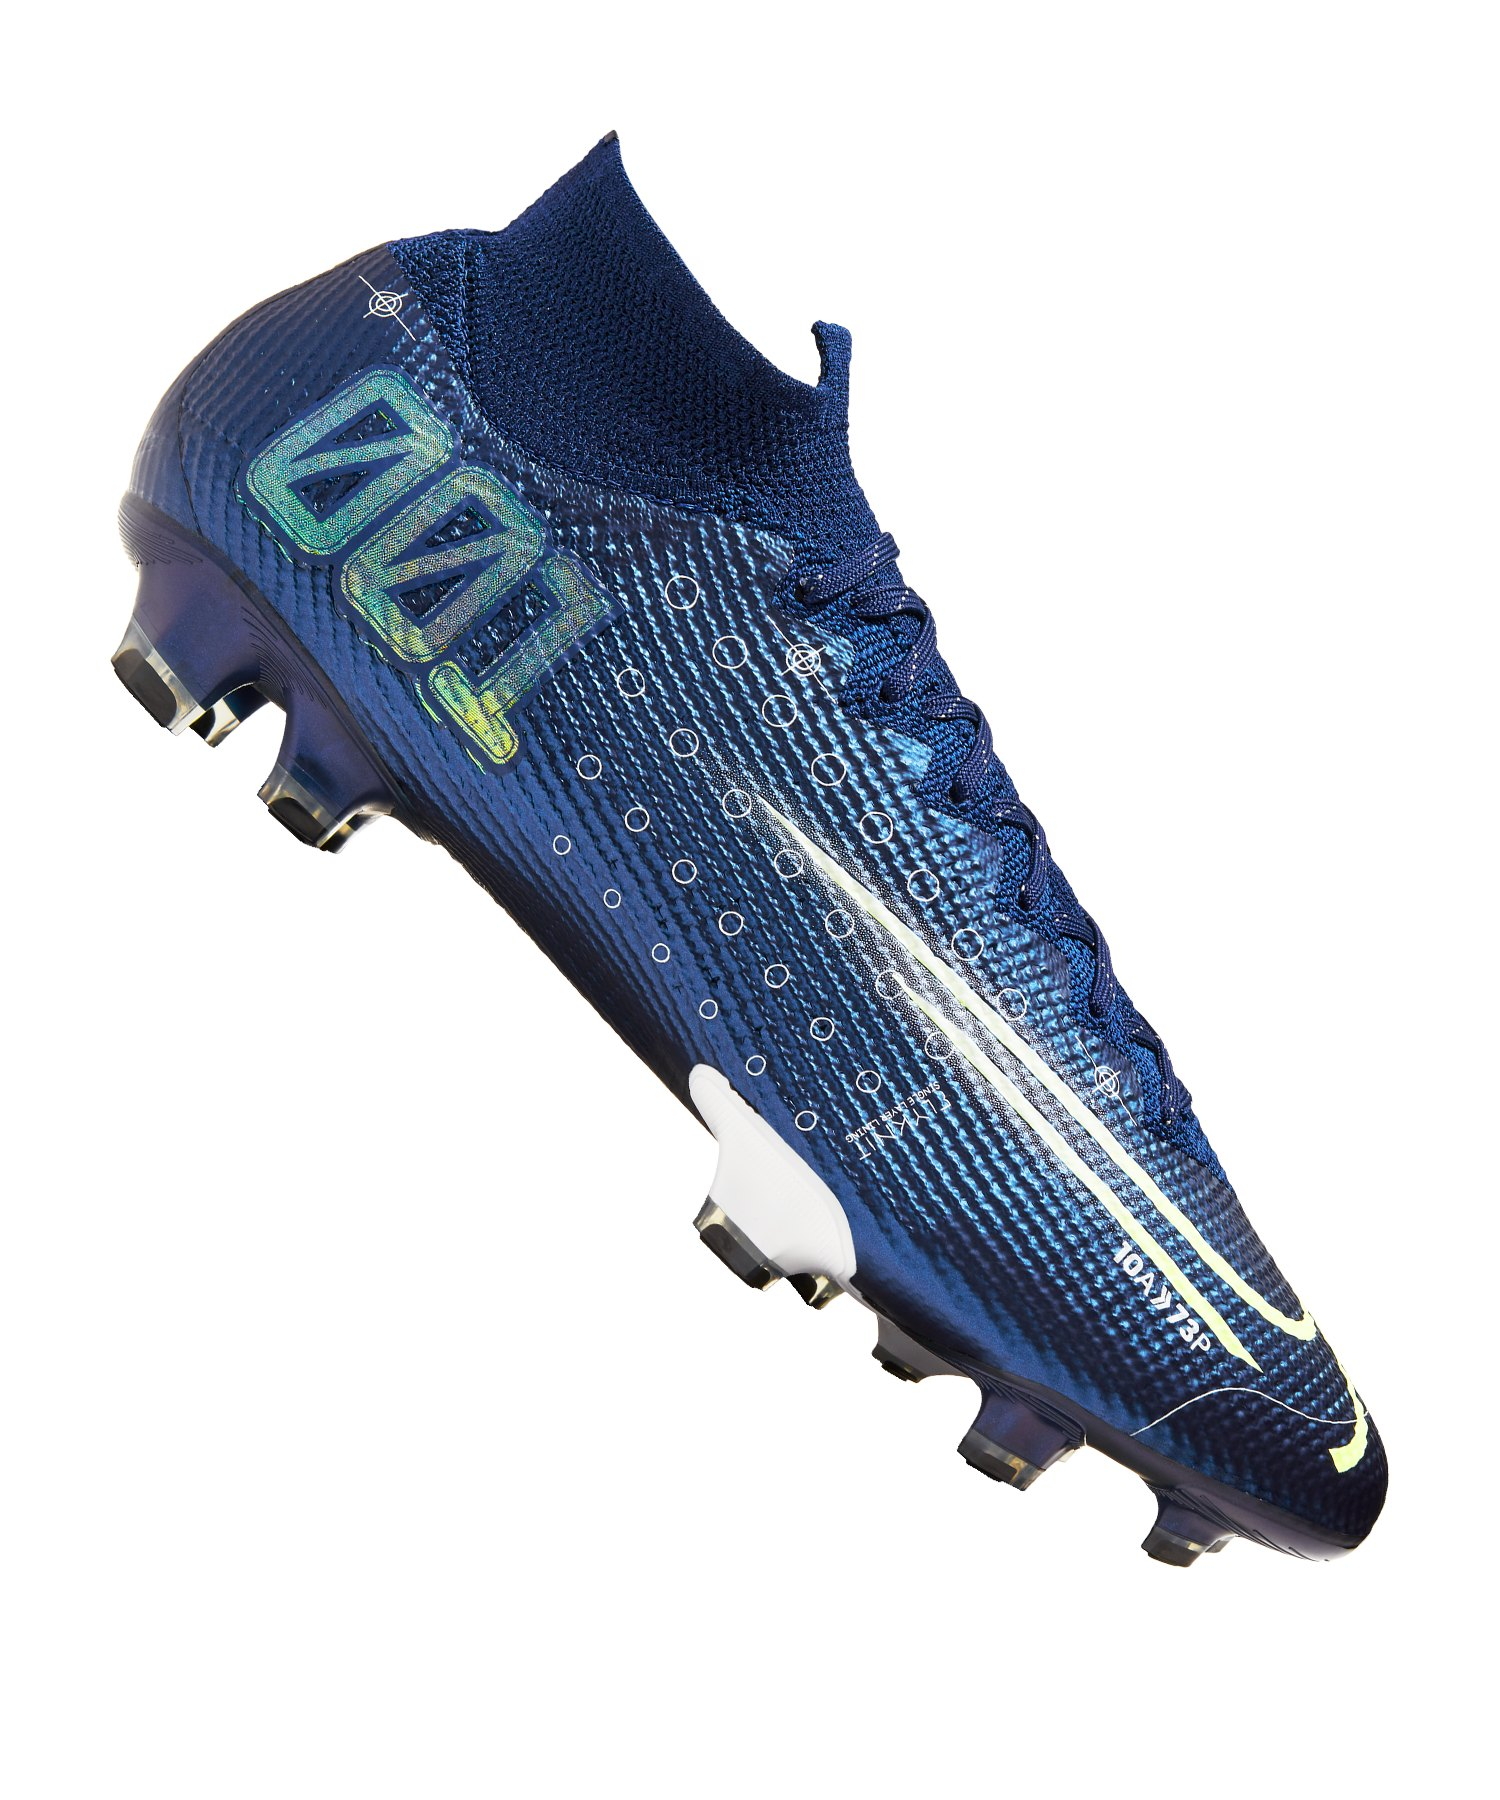 Nike Mercurial Superfly VII Dreamspeed Elite FG Blau F401 - blau